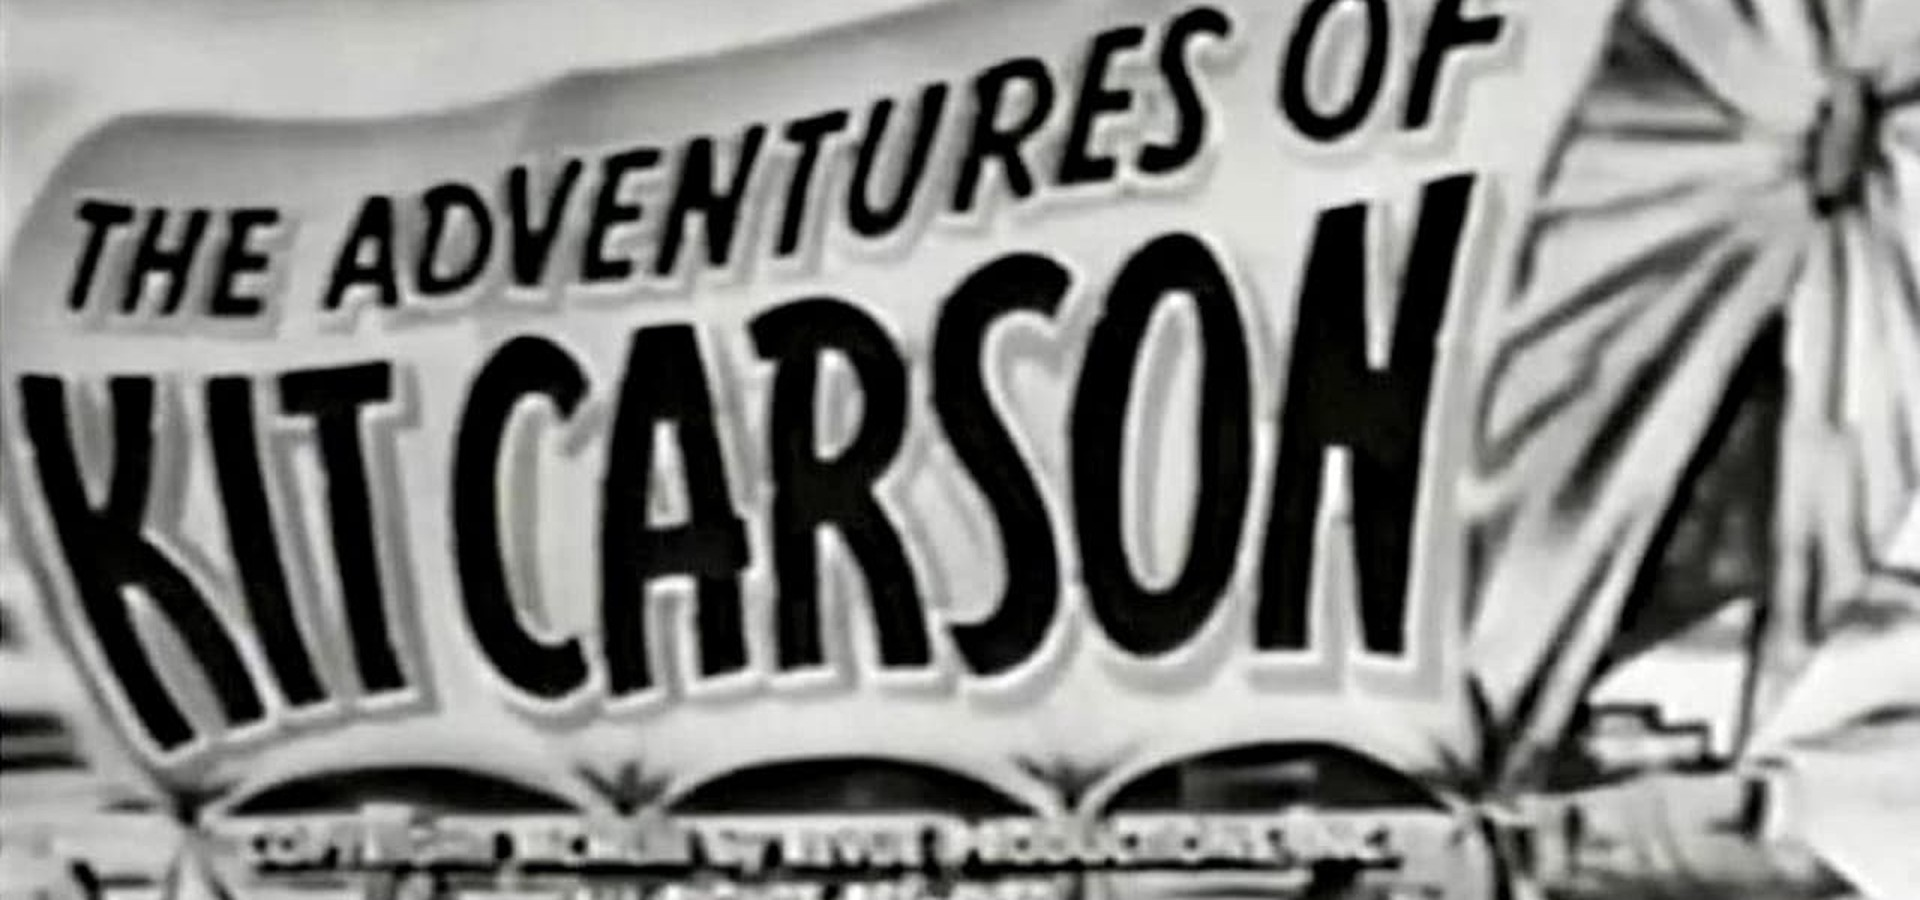 Adventures of Kit Carson